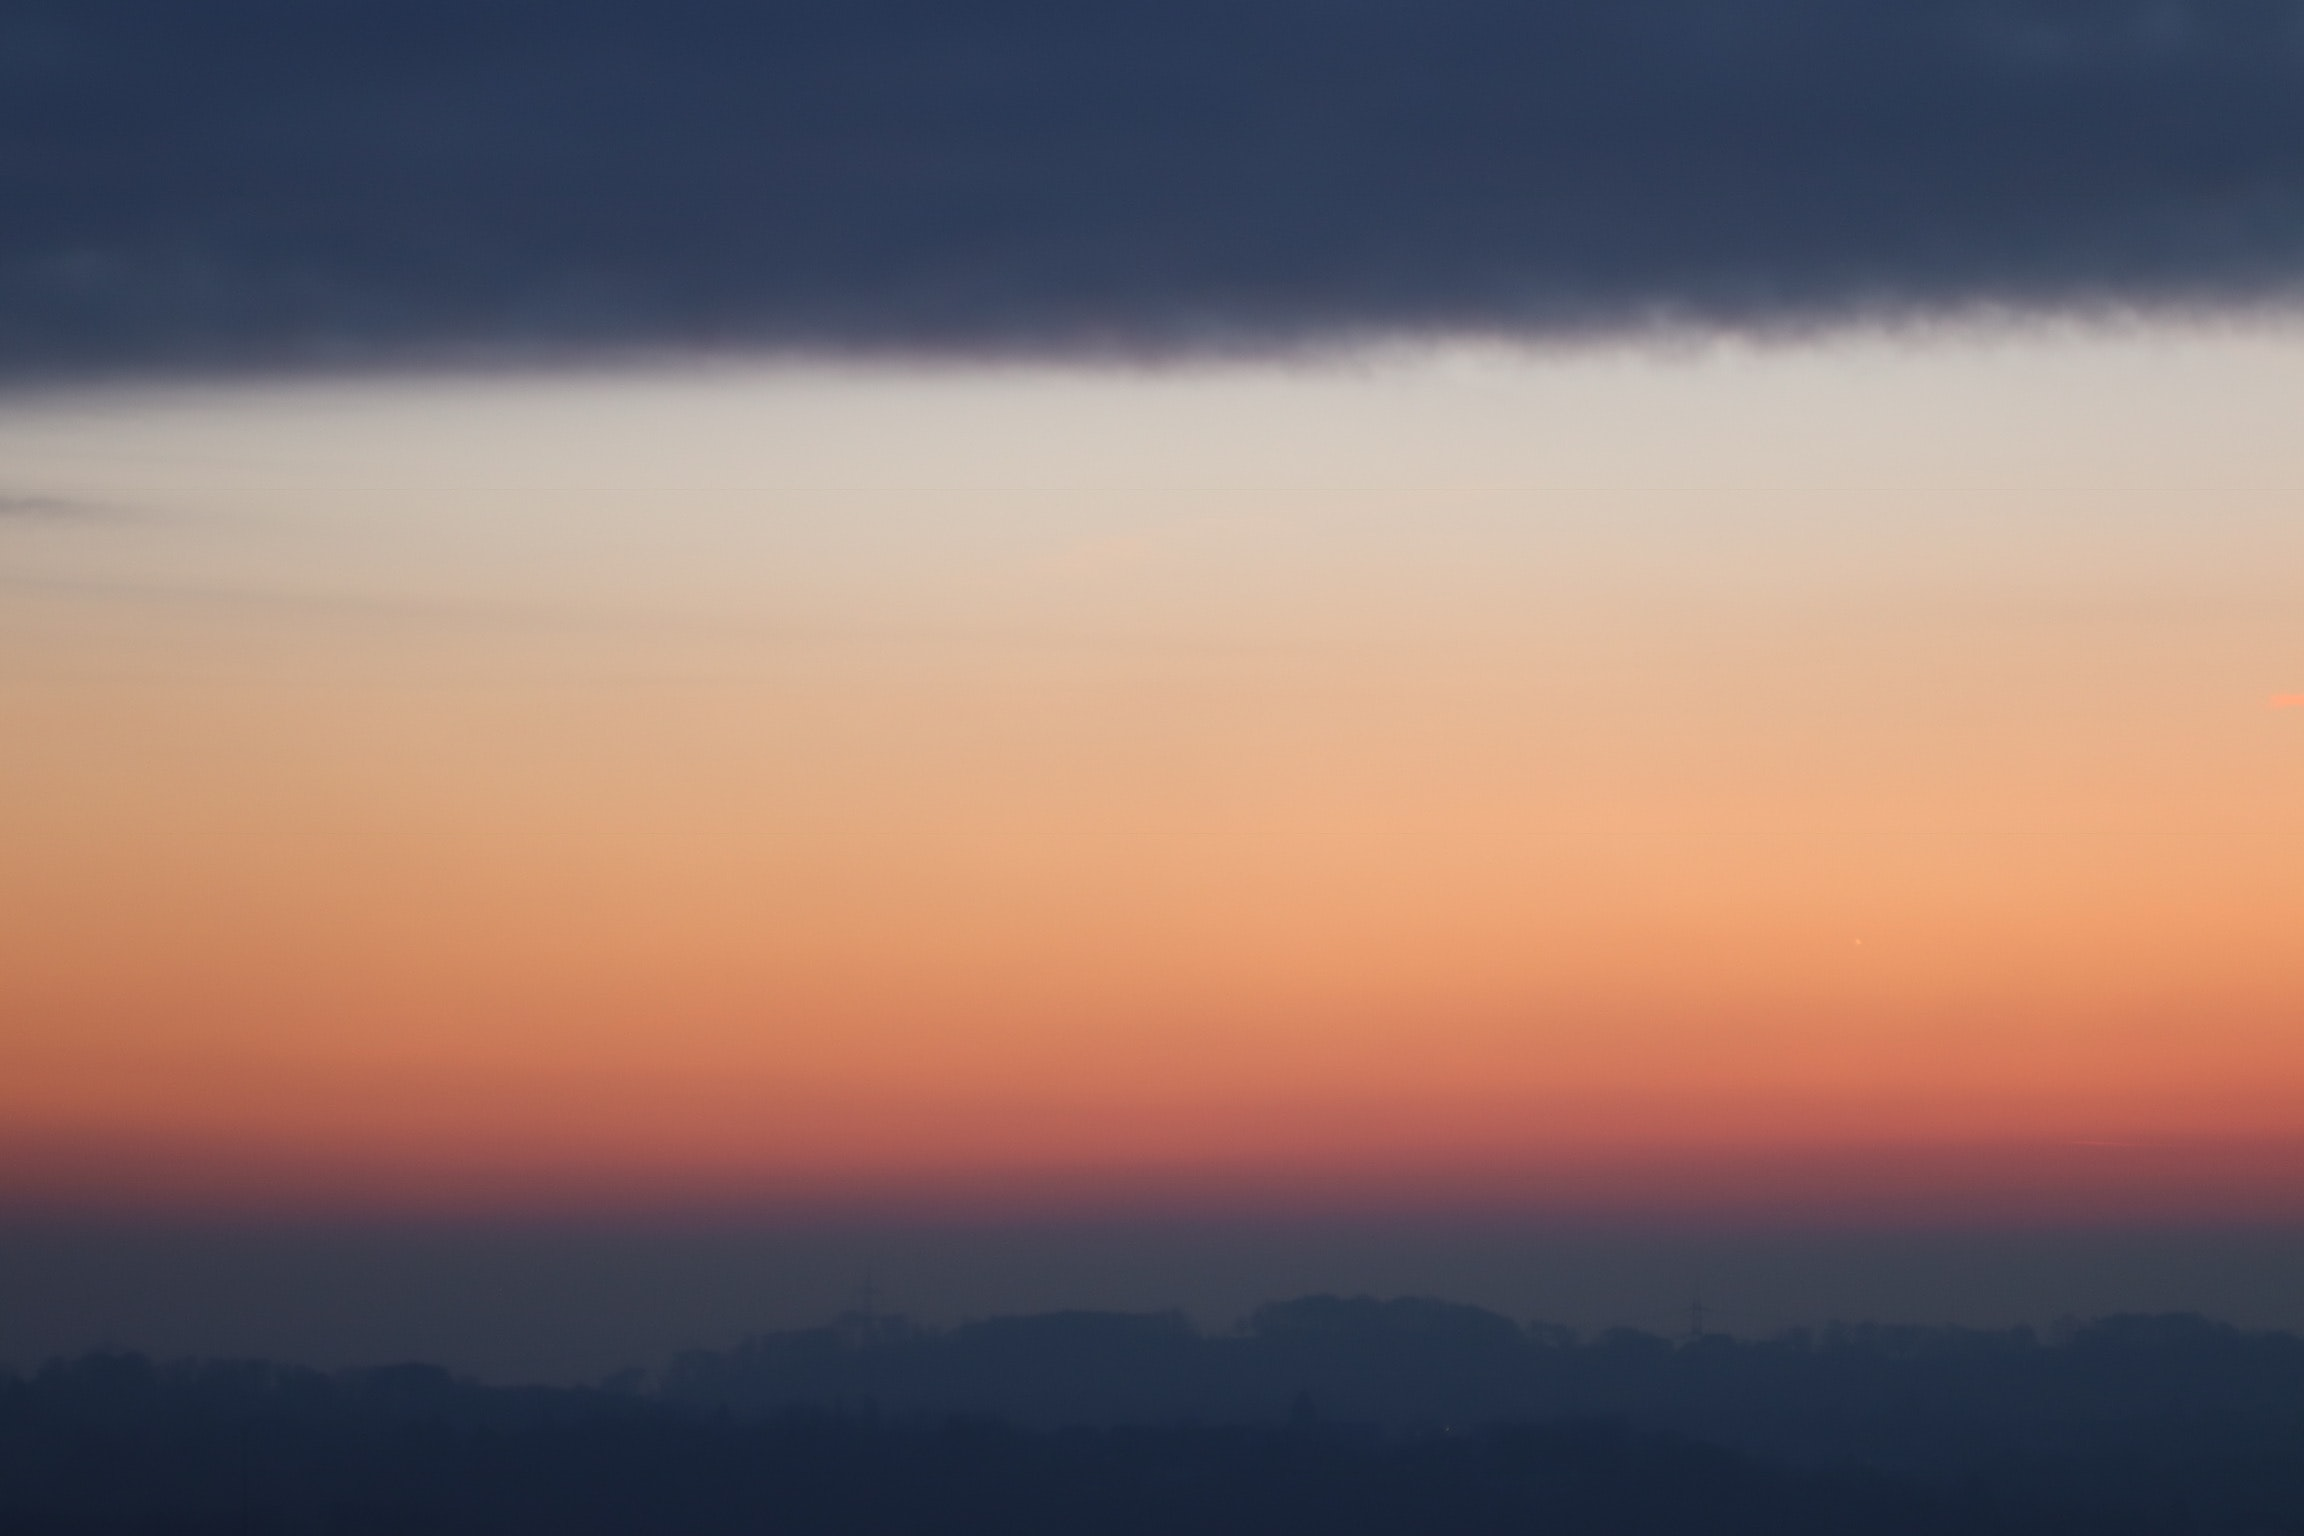 silhouette of mountains under gray and orange sky during sundown